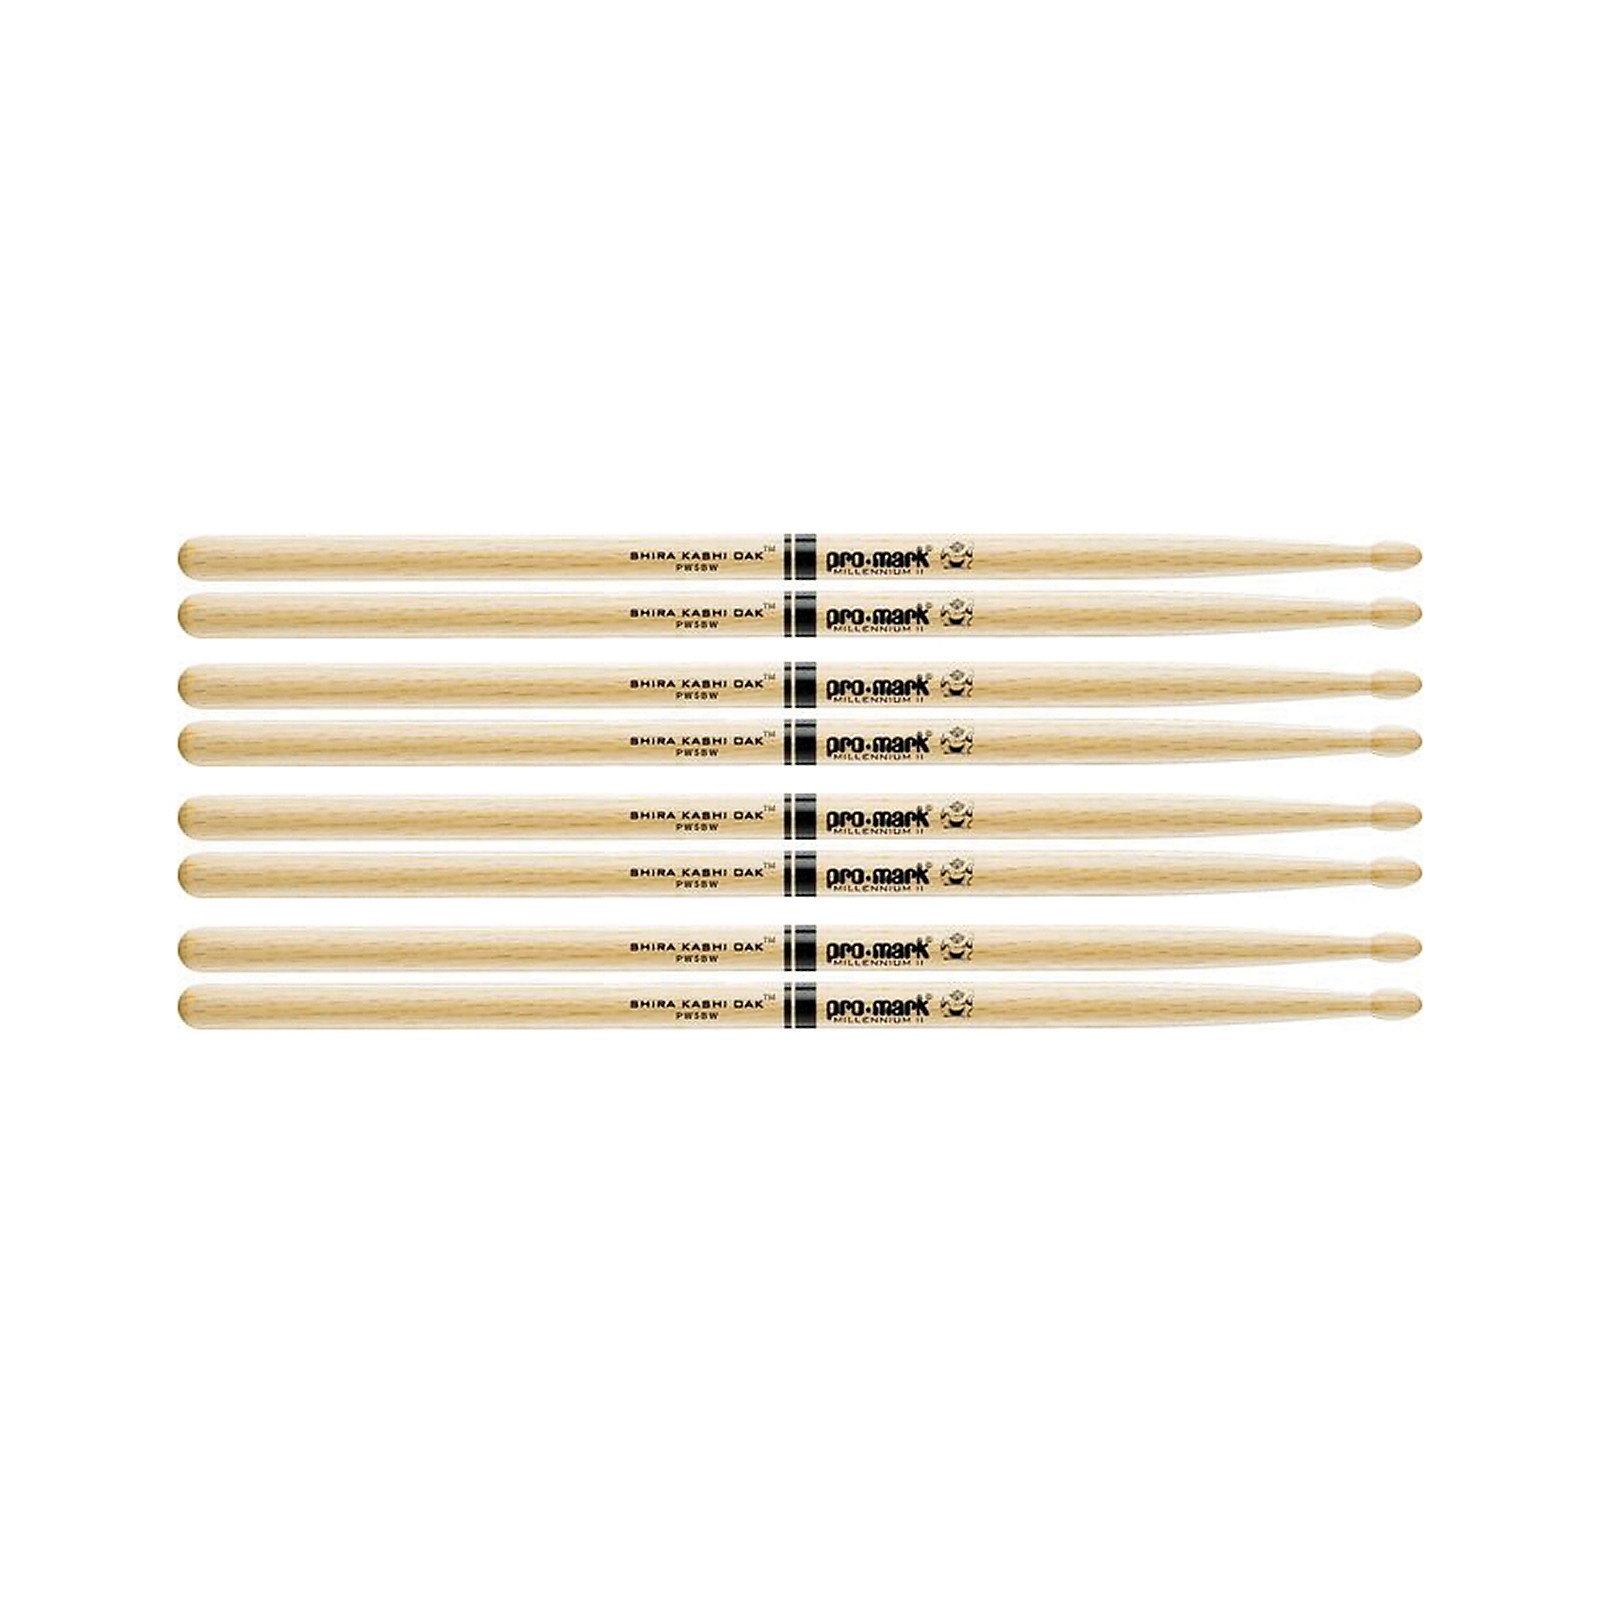 Promark Japanese White Oak Drumsticks 4-Pair